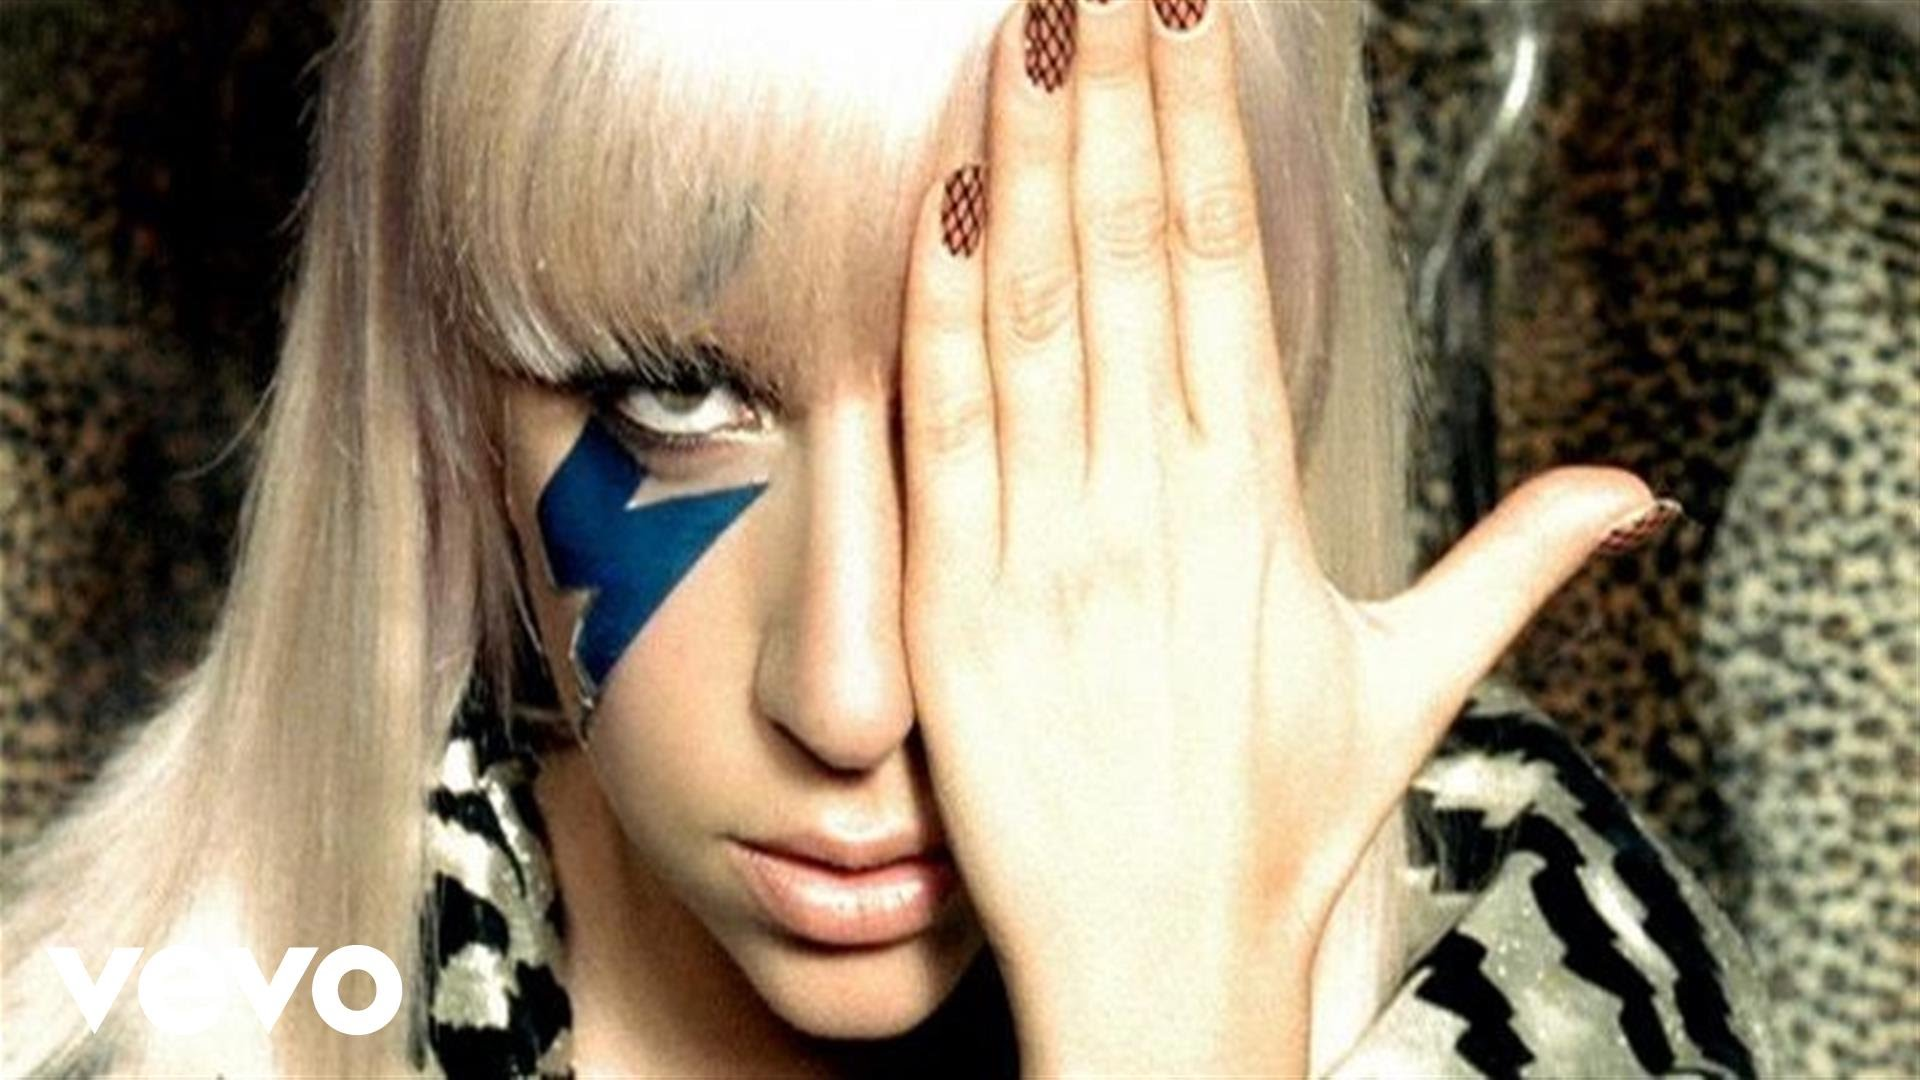 Lady Gaga's debut single 'Just Dance' turns 10 years old